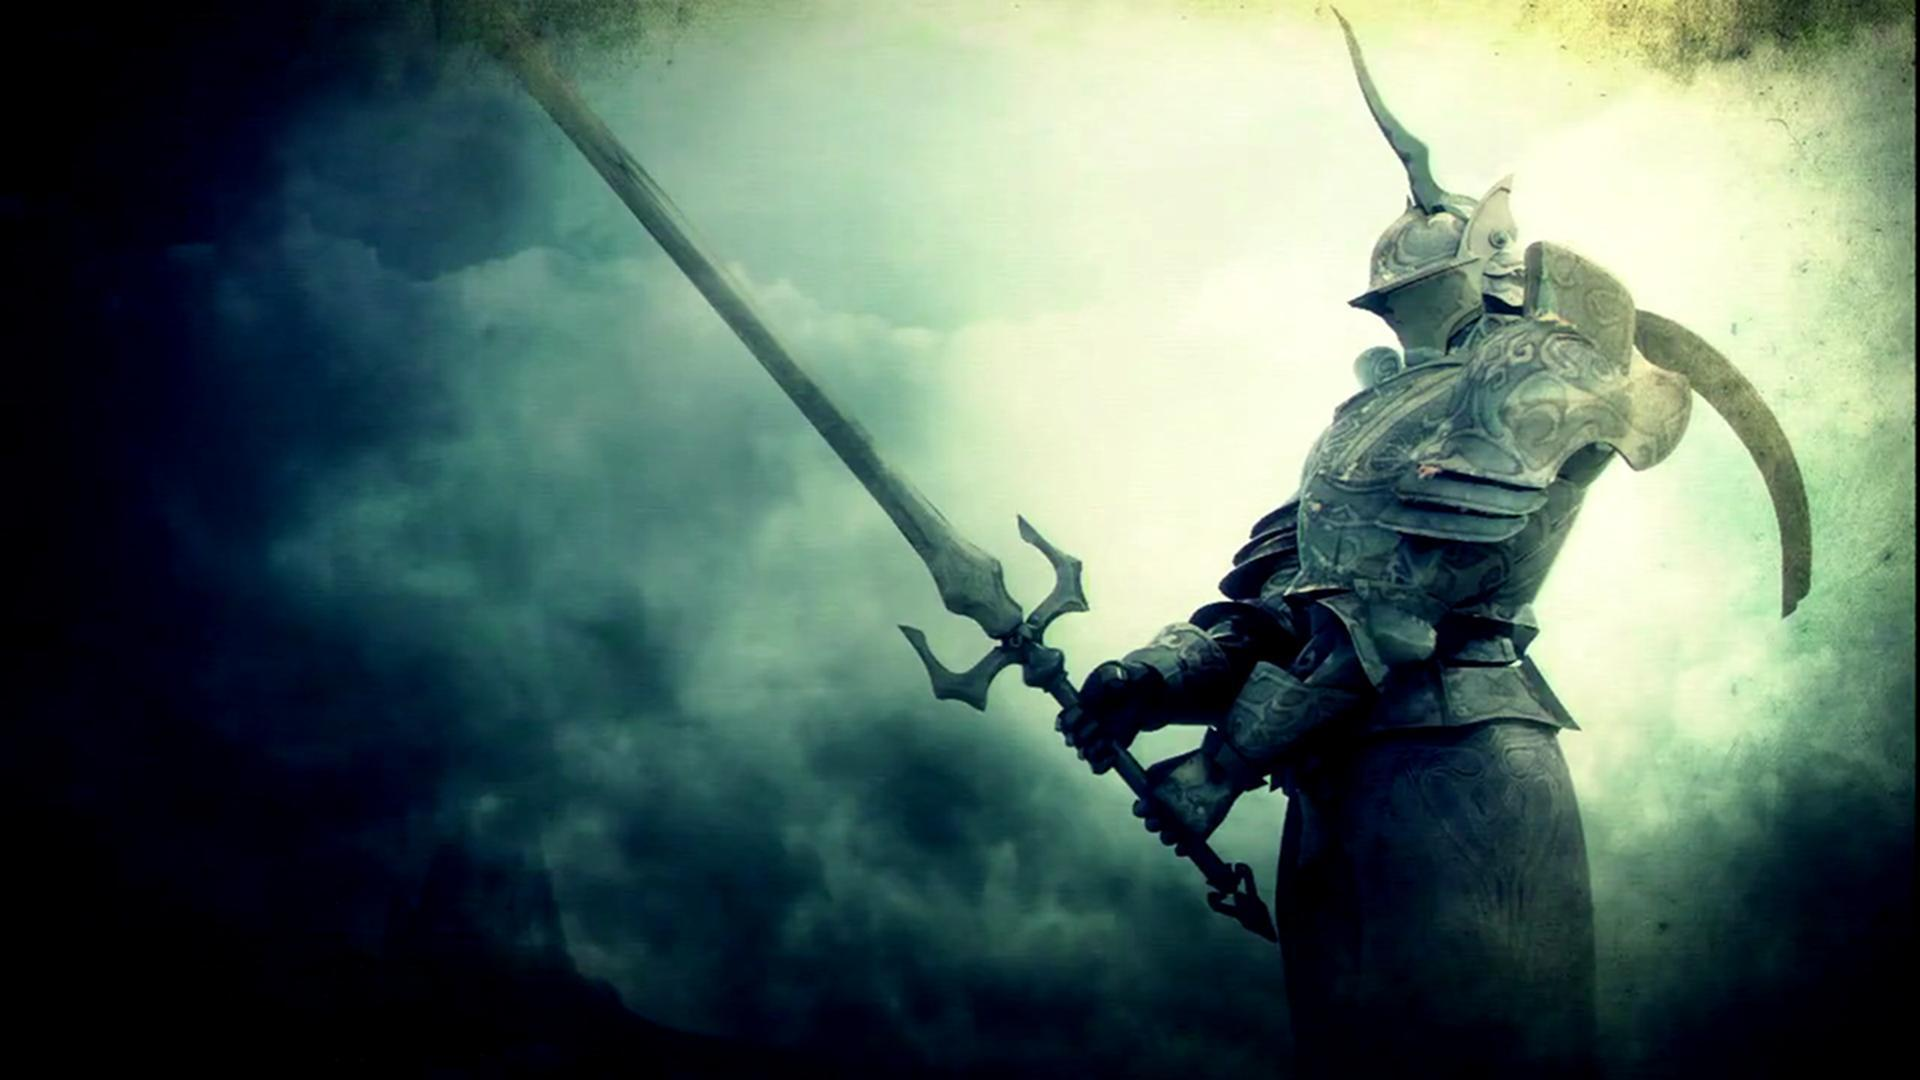 dark souls lodran wallpaper - photo #28